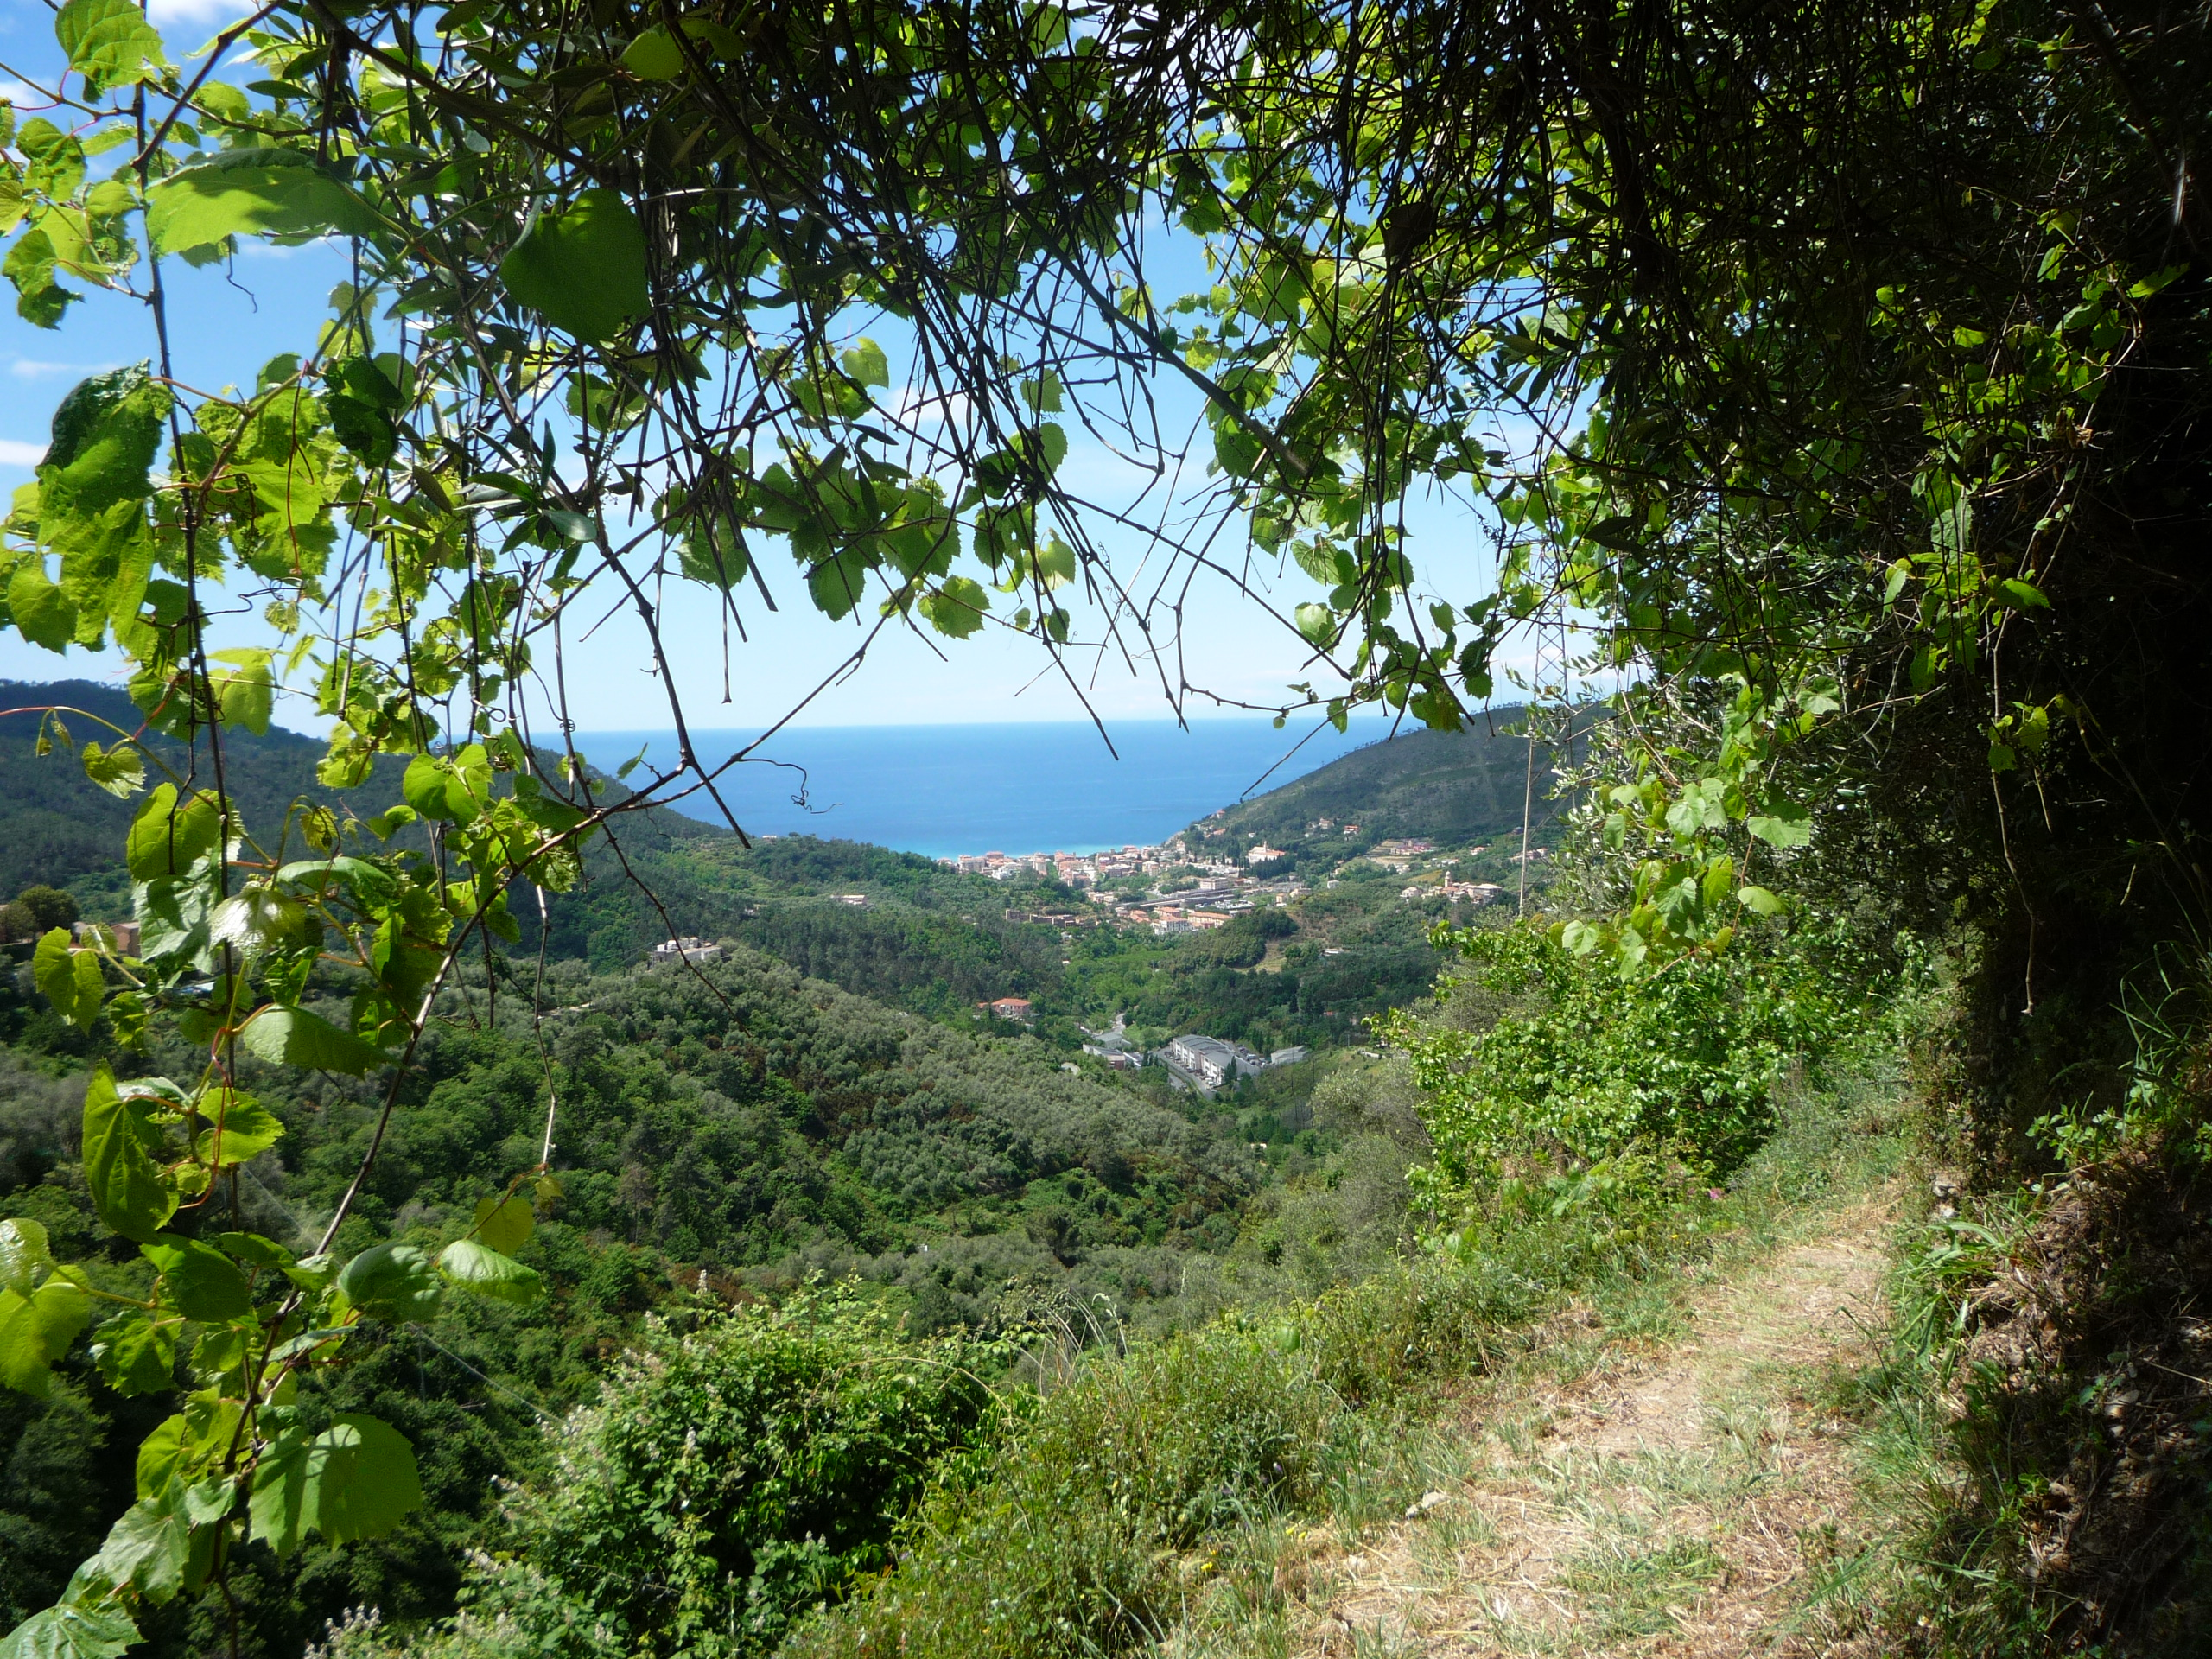 The scenery of Cinque Terre